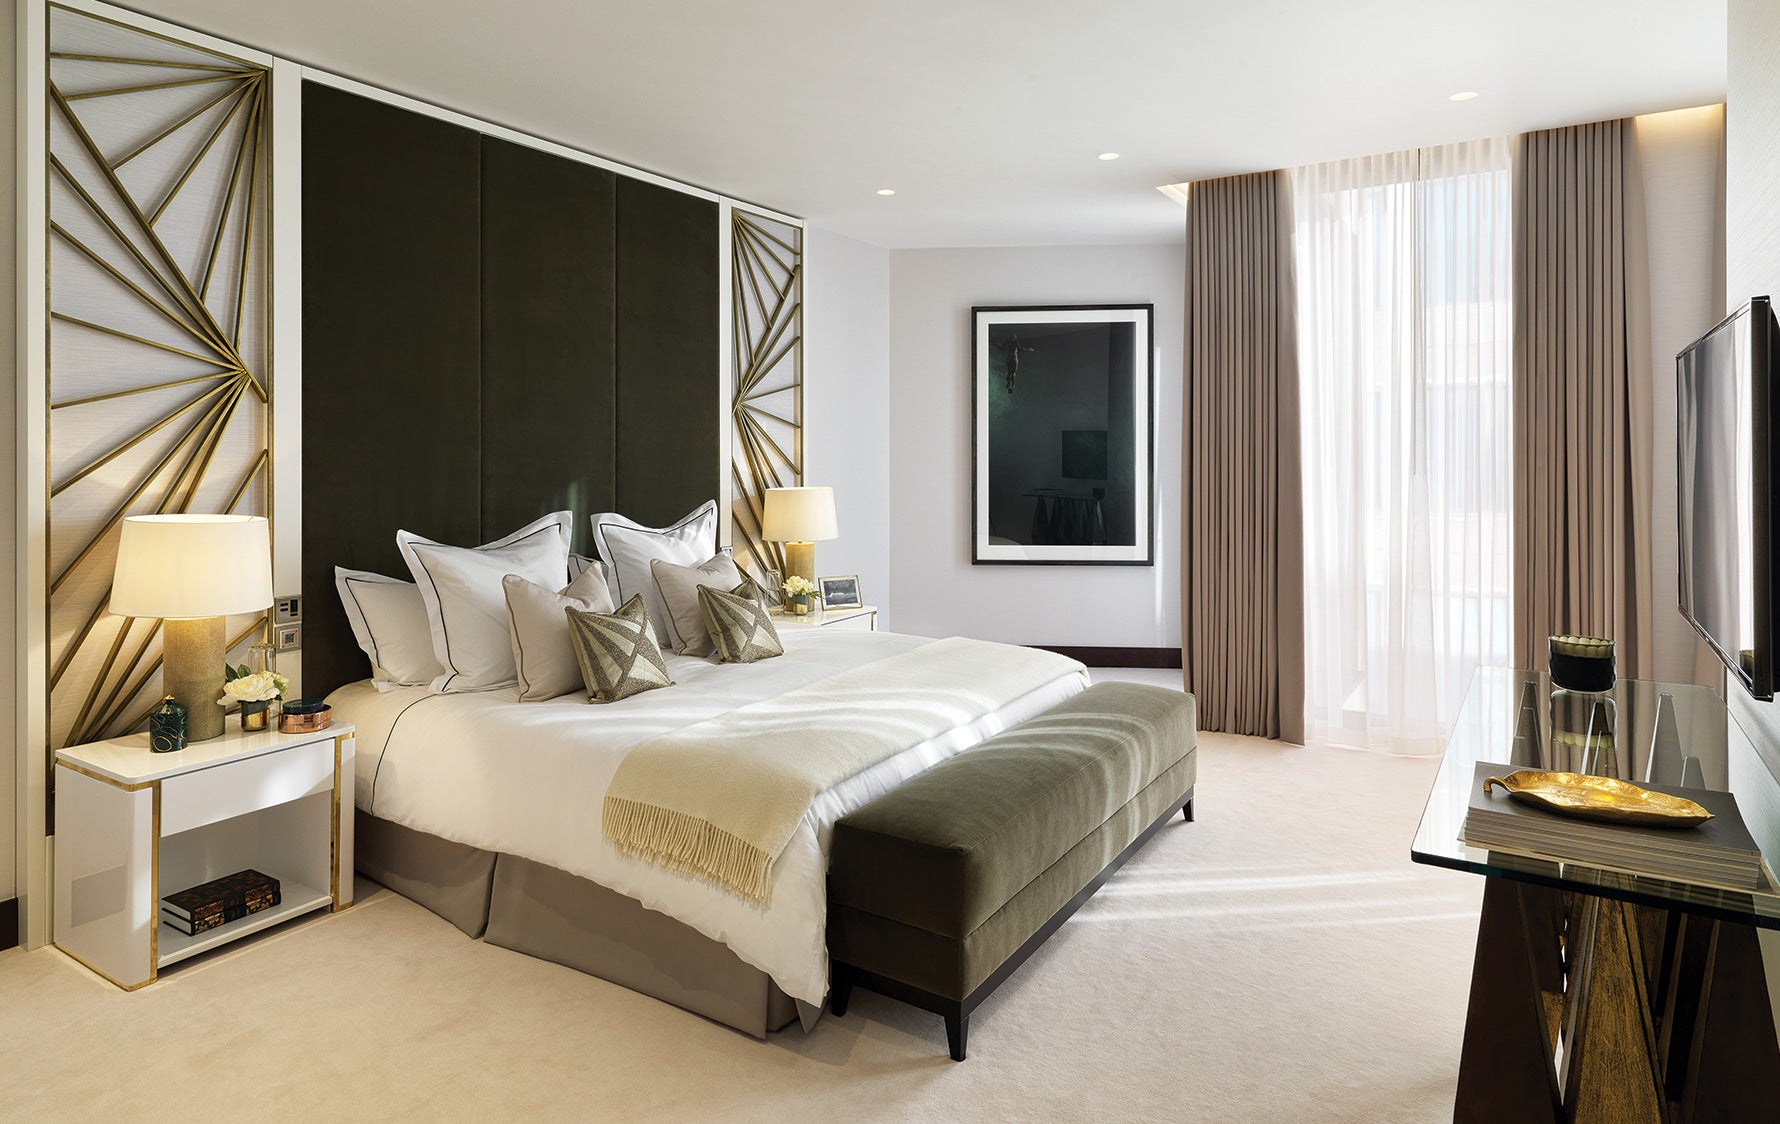 Green Interior Inspiration – Green Bedroom – Spinocchia Freund – LuxDeco.com Style Guide